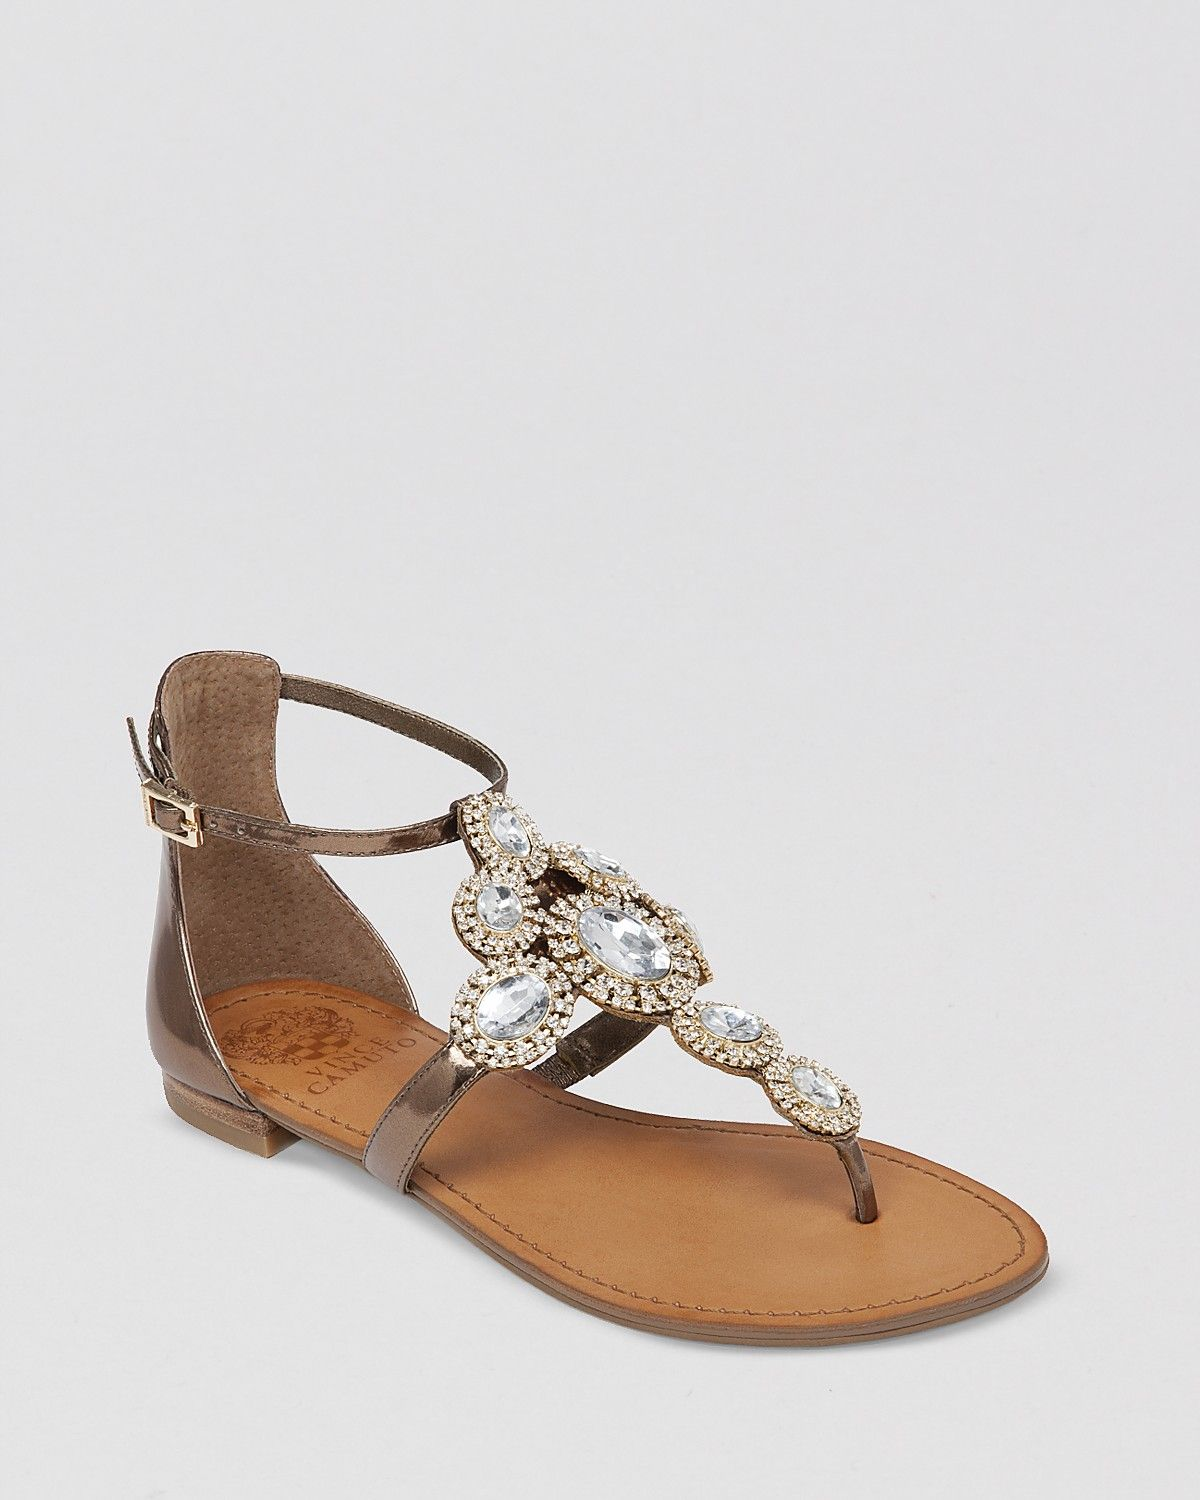 1368e1328 VINCE CAMUTO Jeweled Thong Flat Sandals - Manelle | Bloomingdale's ...